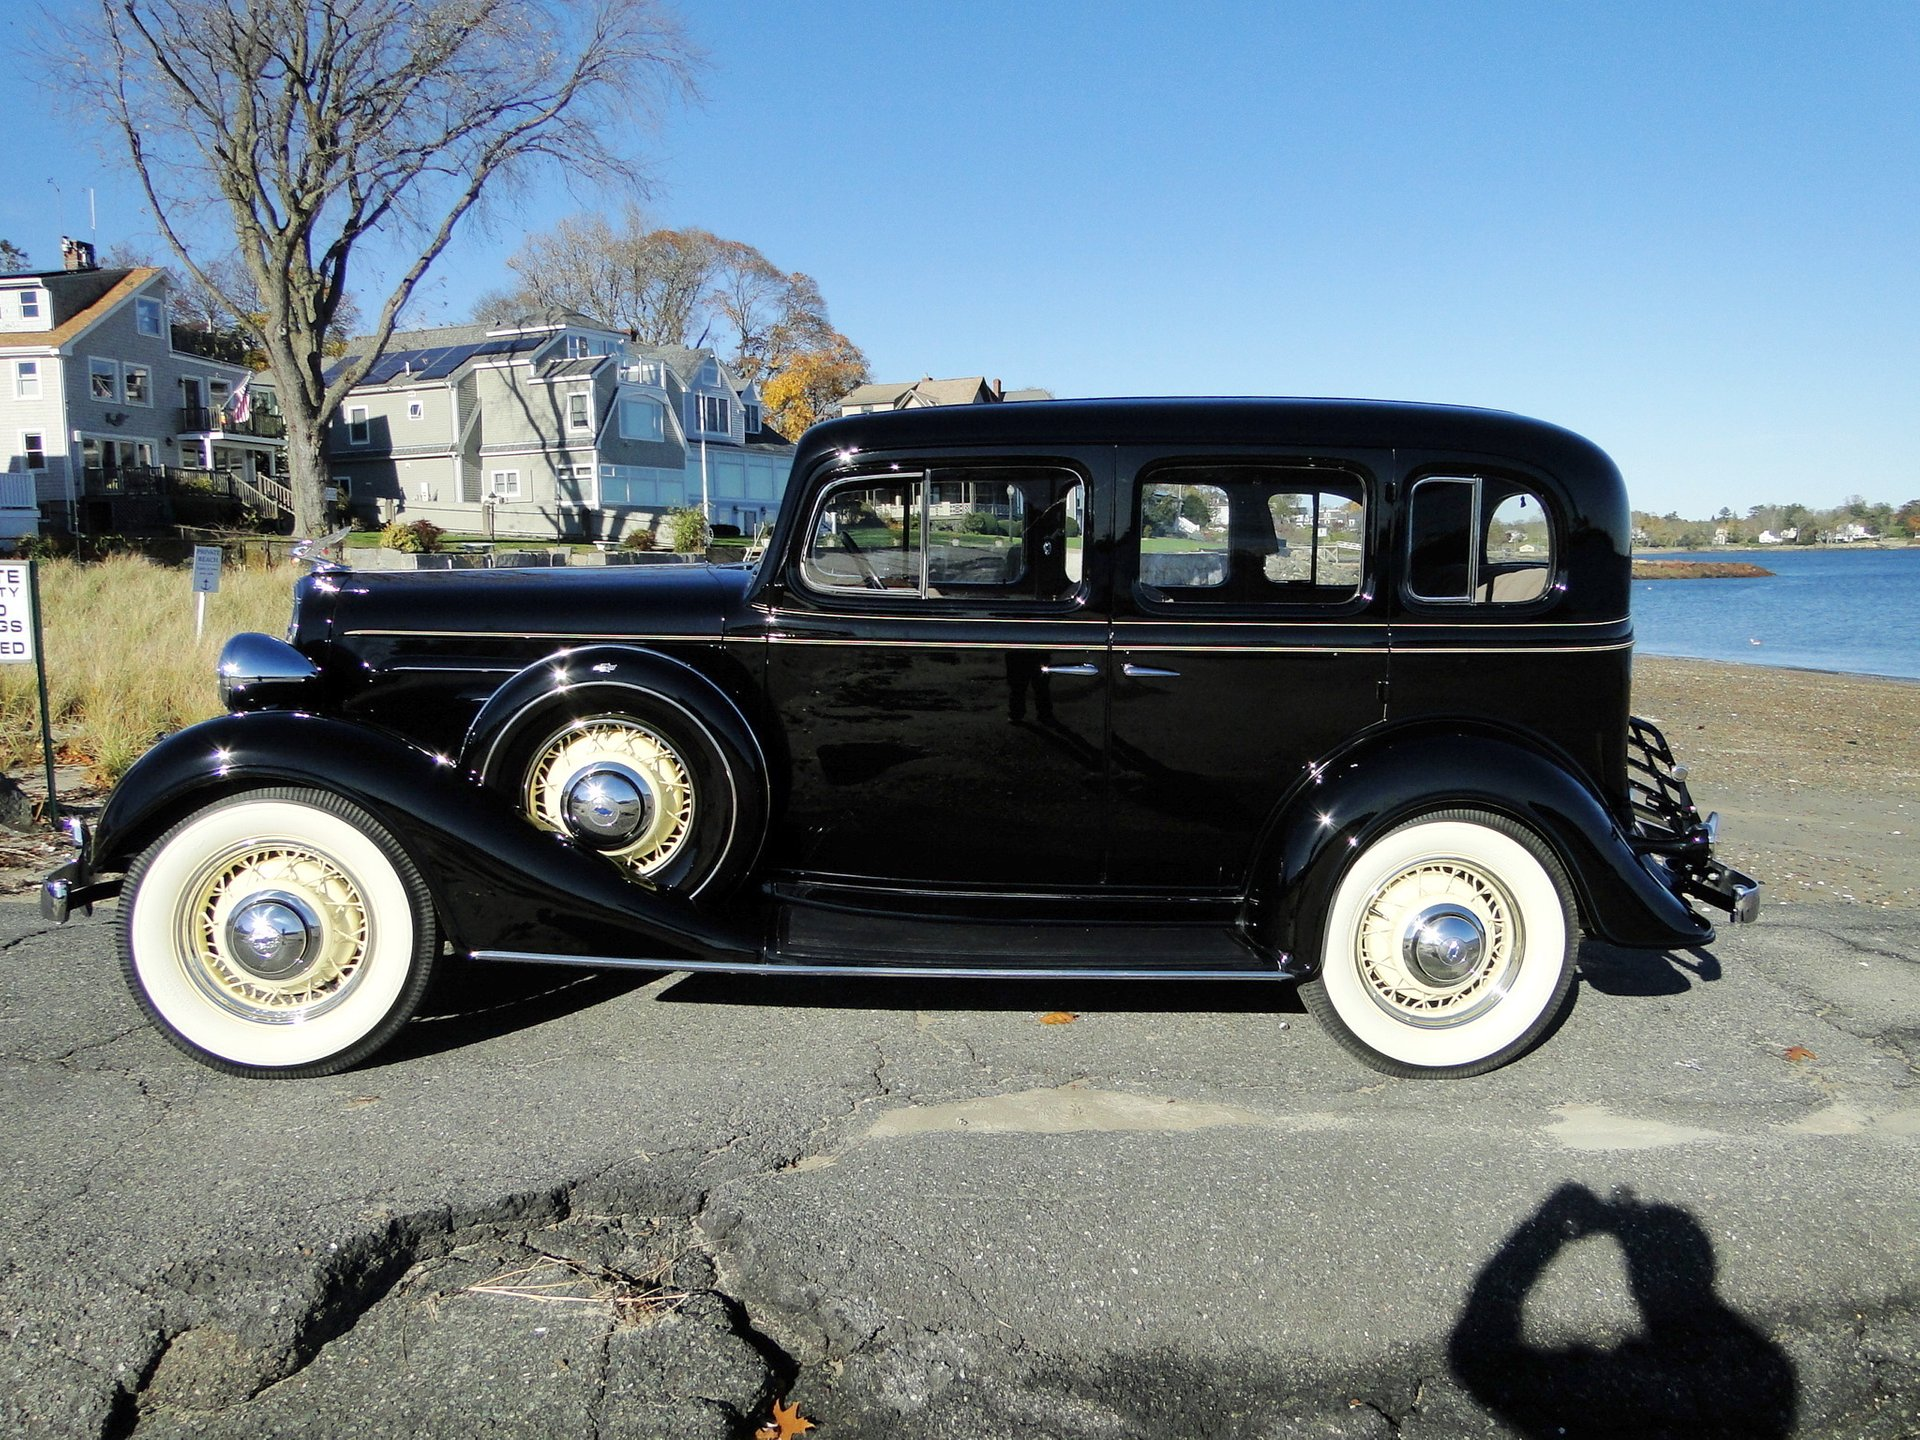 1934 Chevrolet Master Legendary Motors Classic Cars Muscle Cars Hot Rods Antique Cars Beverly Ma